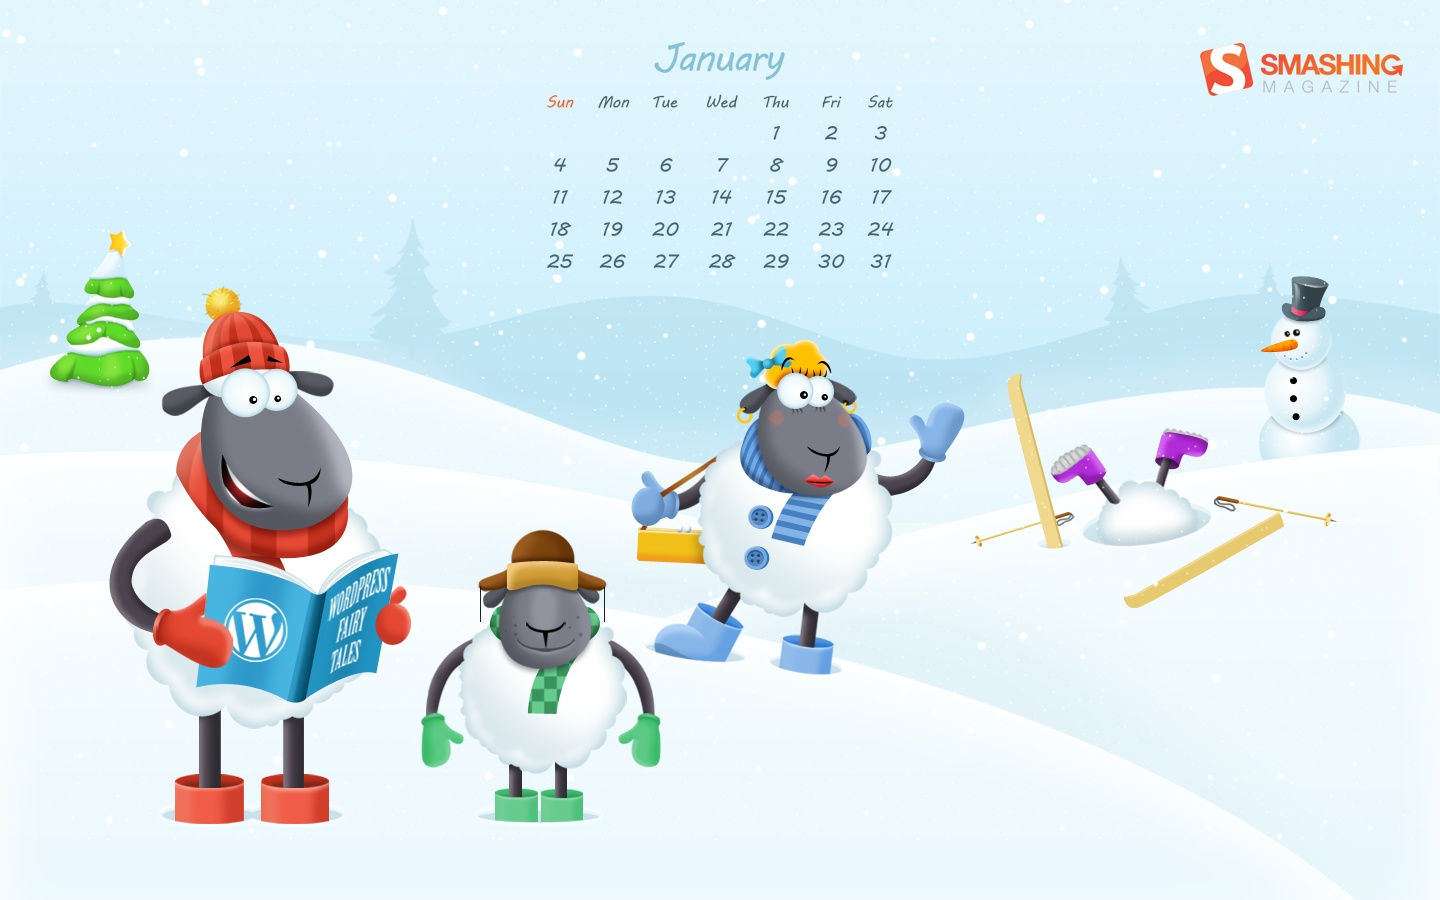 In January Calendar Wallpaper 51330